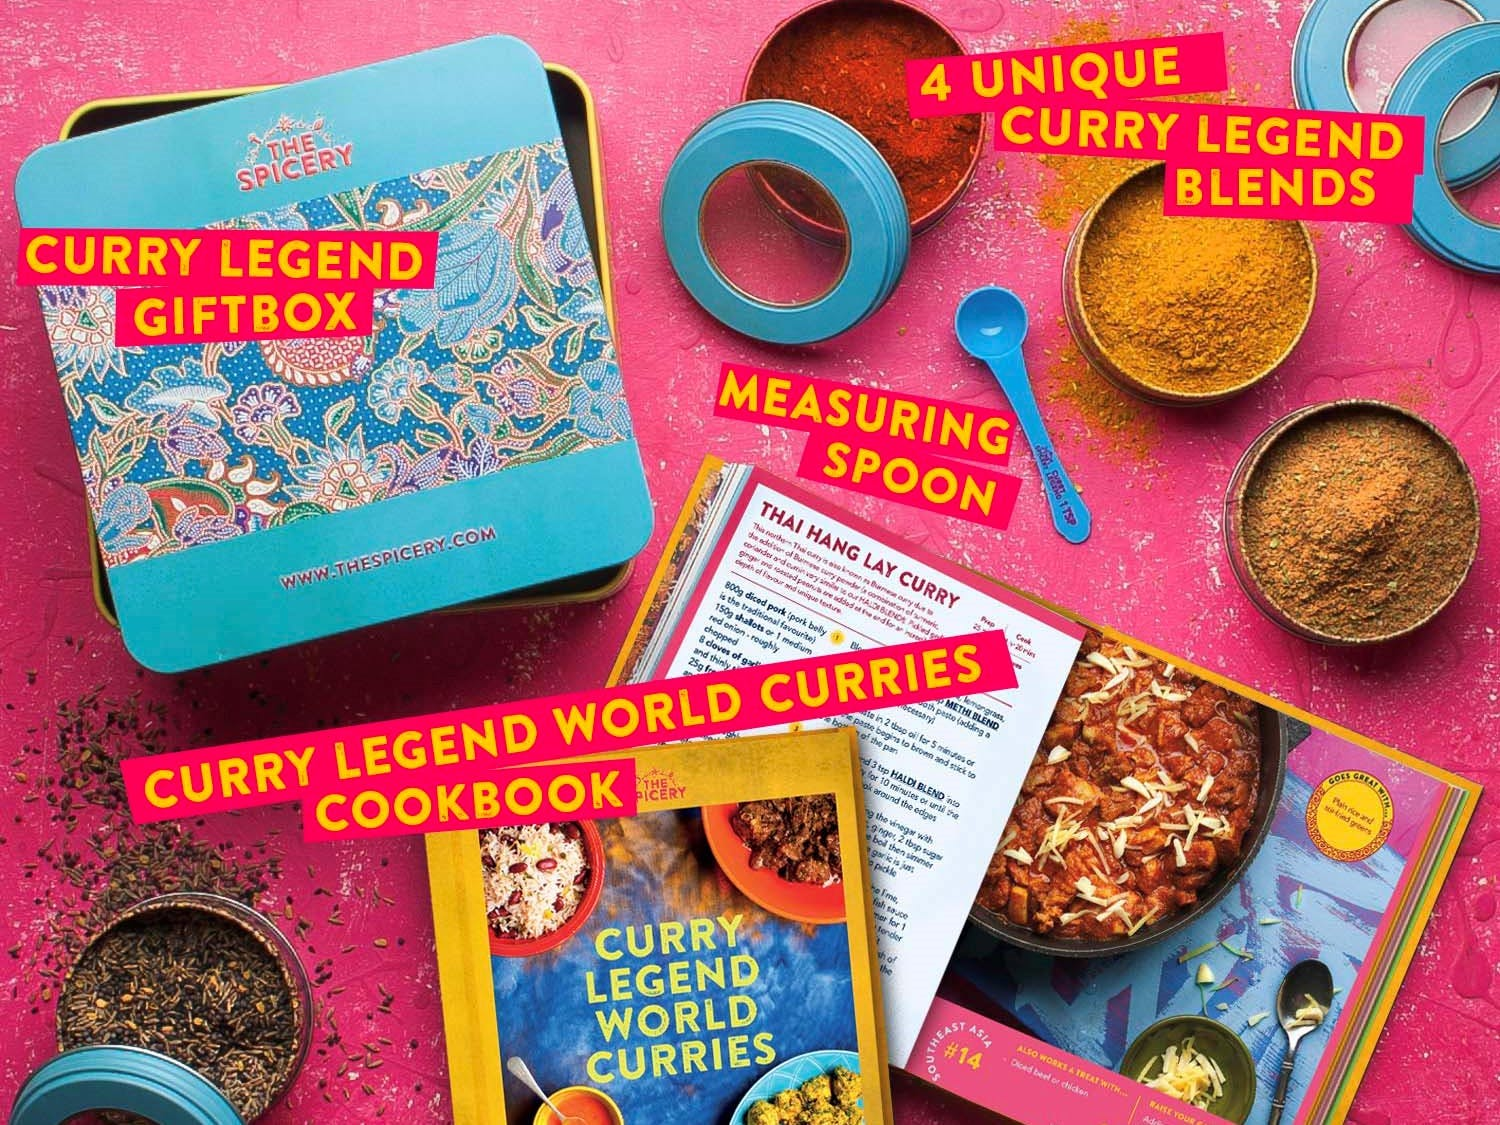 The Spicery's World Curries Cookbook Kit